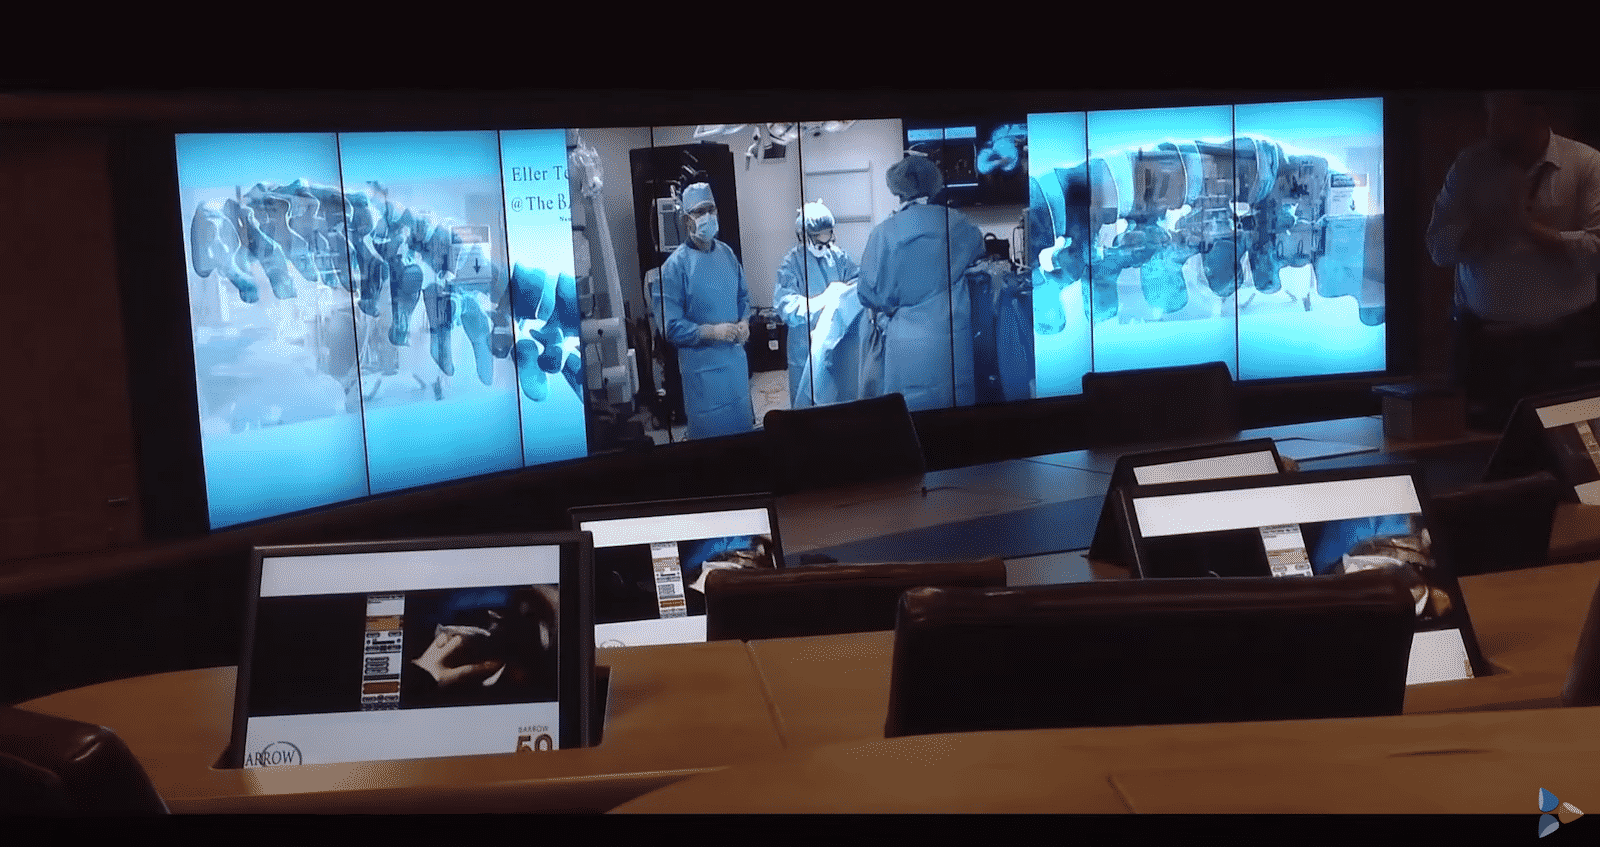 4 Ways To Use Video Walls for Education and Engagement